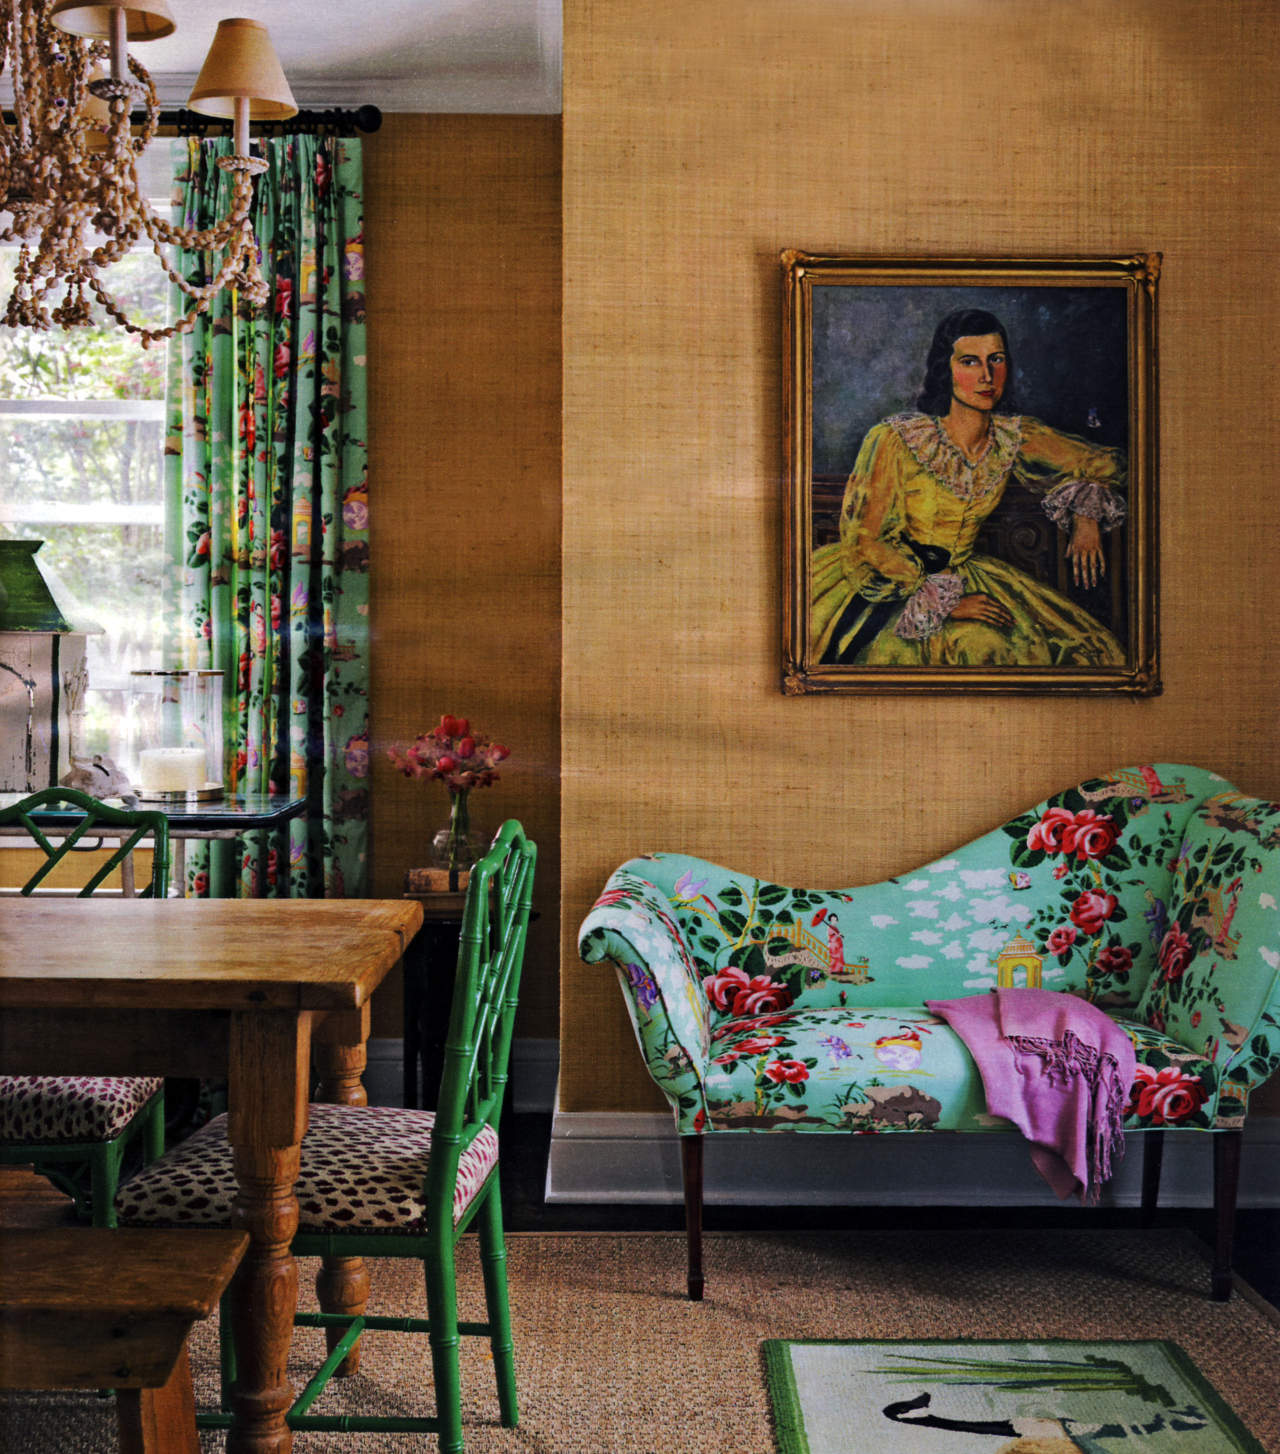 home décor trends - flowered print sofa in 2009 dining room on Long Island - Country Living via Atticmag